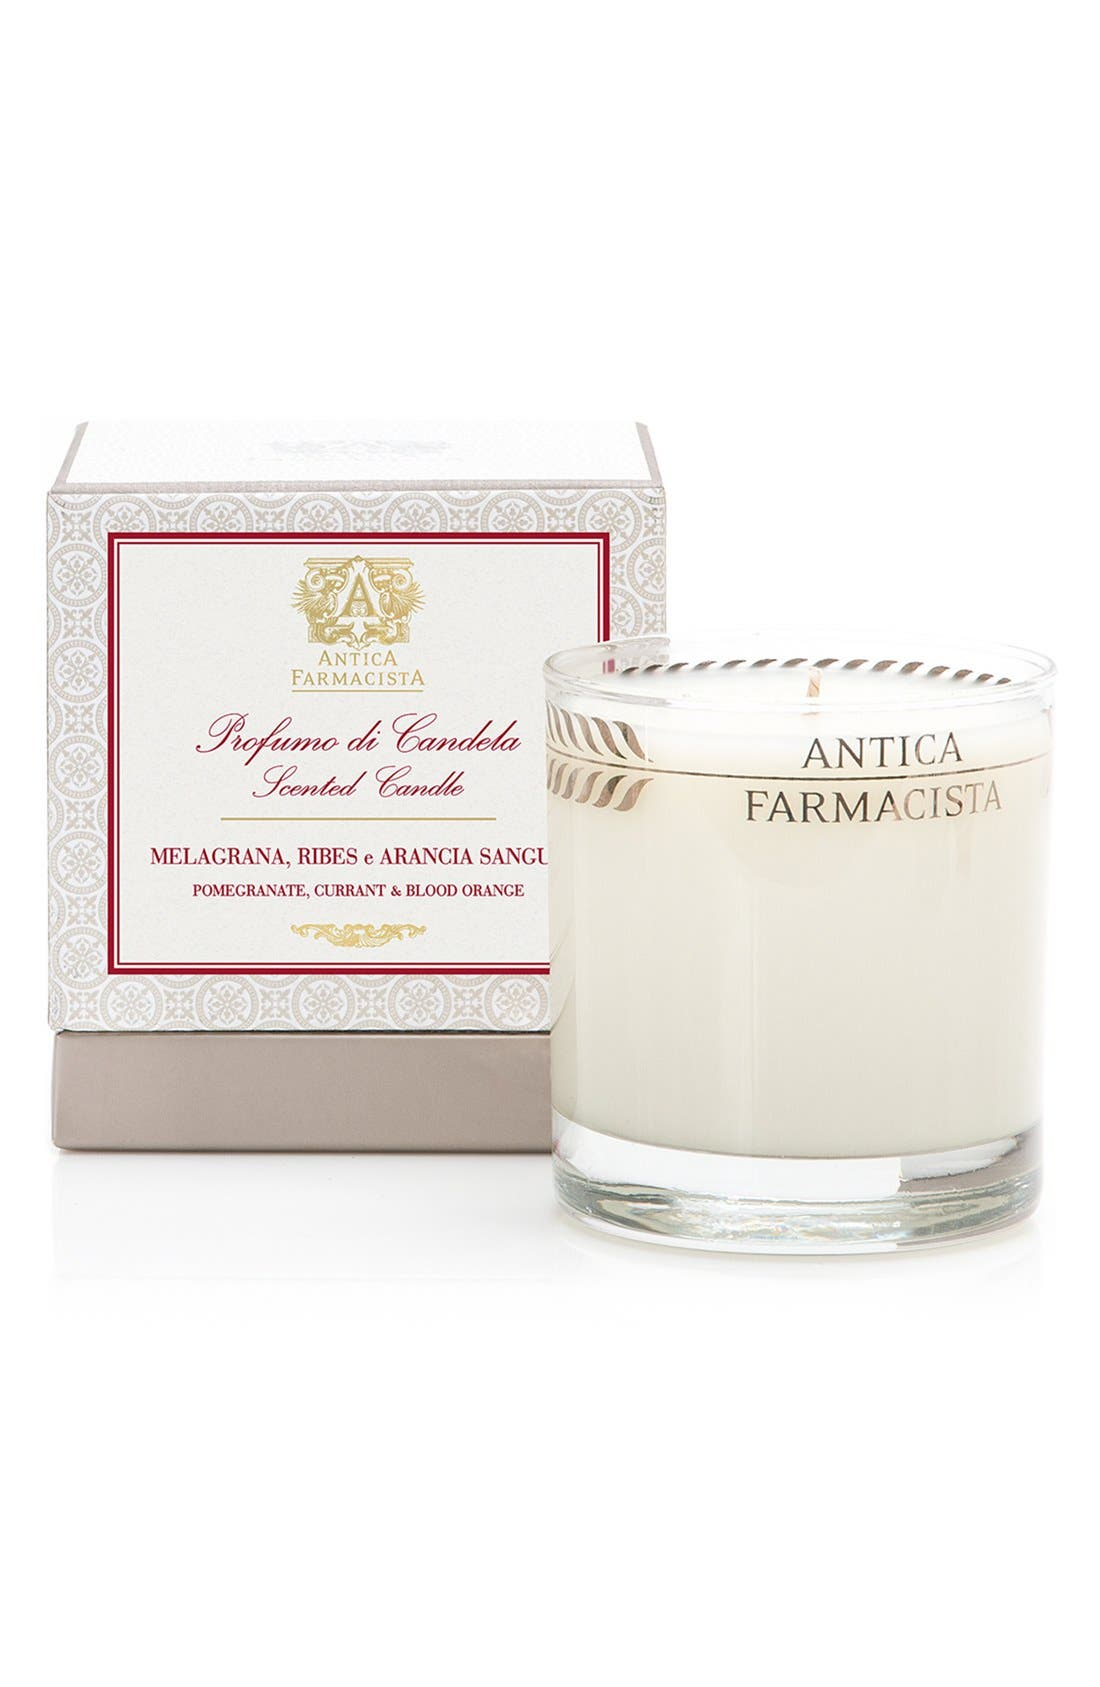 ANTICA FARMACISTA 'Pomegranate, Currant & Blood Orange' Candle